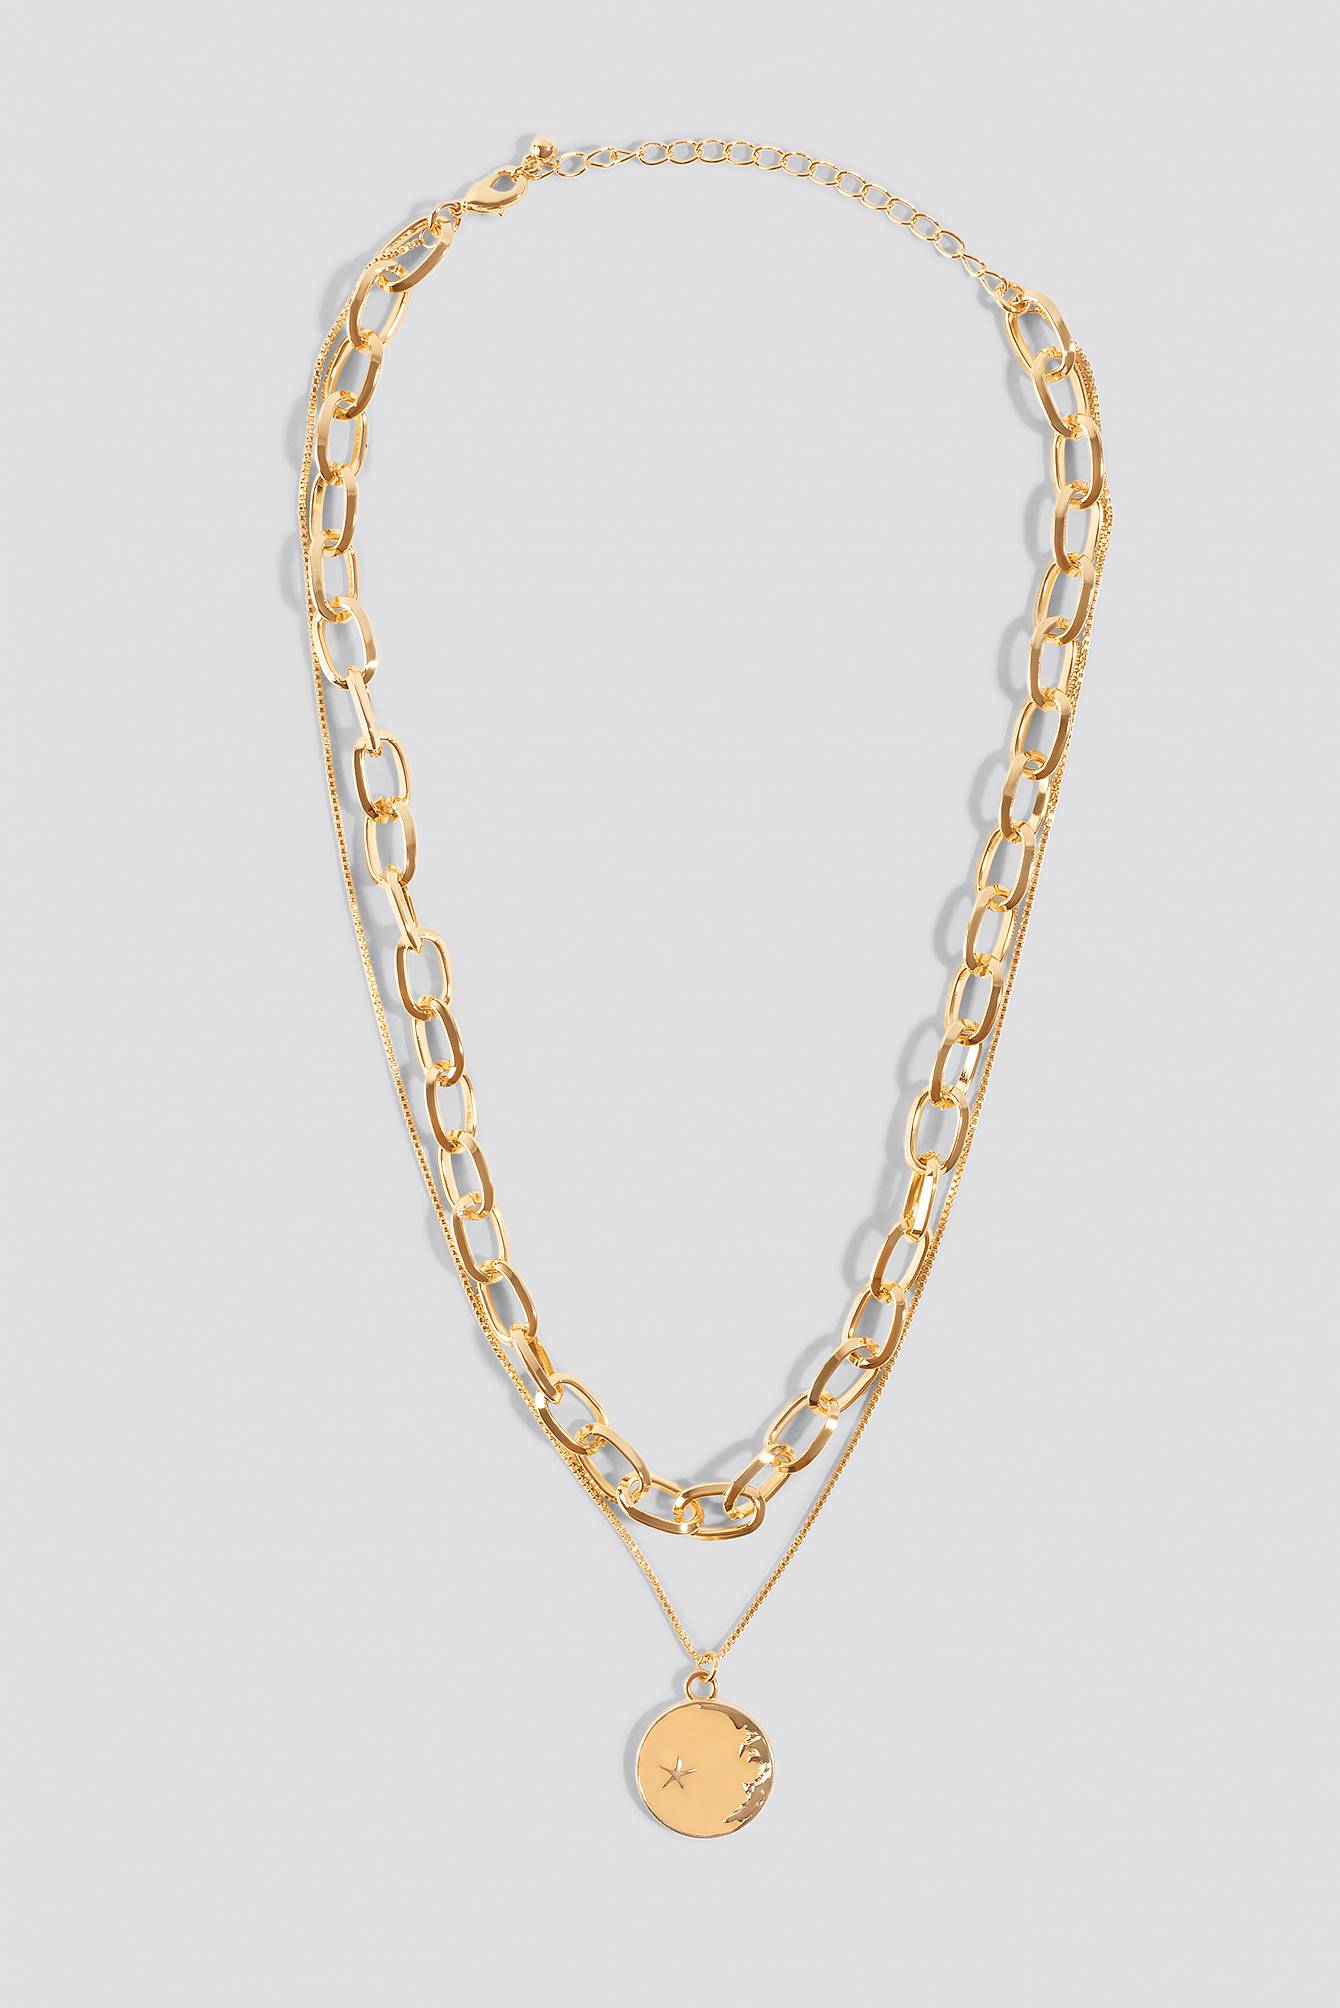 NA-KD Accessories Chain Pendant Double Necklace - Gold